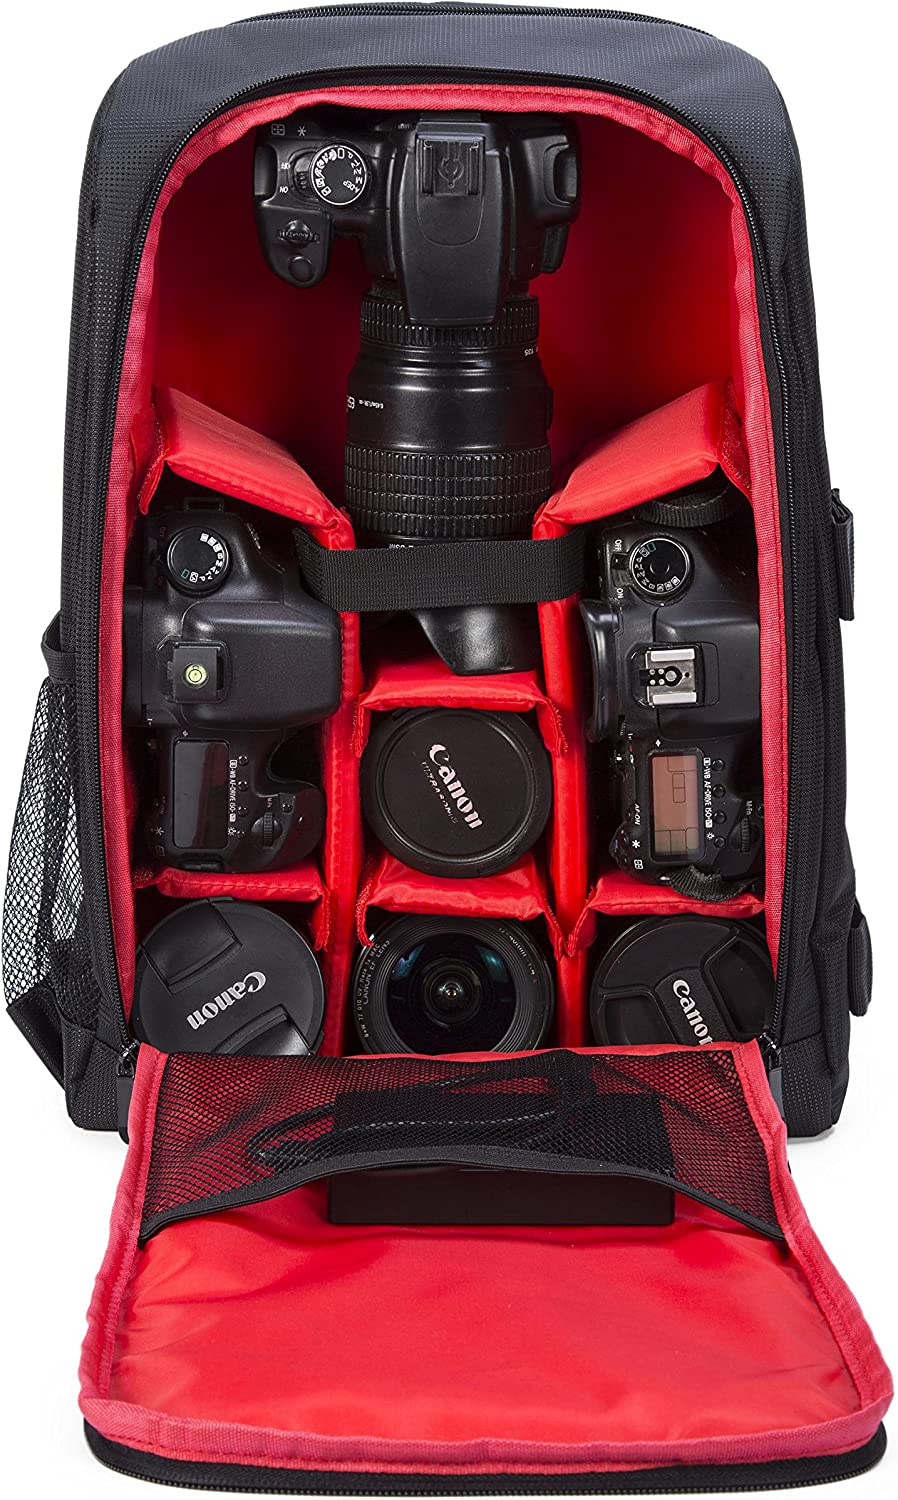 G-raphy Camera Backpack Photography Camera Bag Waterproof with Laptop Compartment/Tripod Holder for DSLR SLR Cameras (Red)